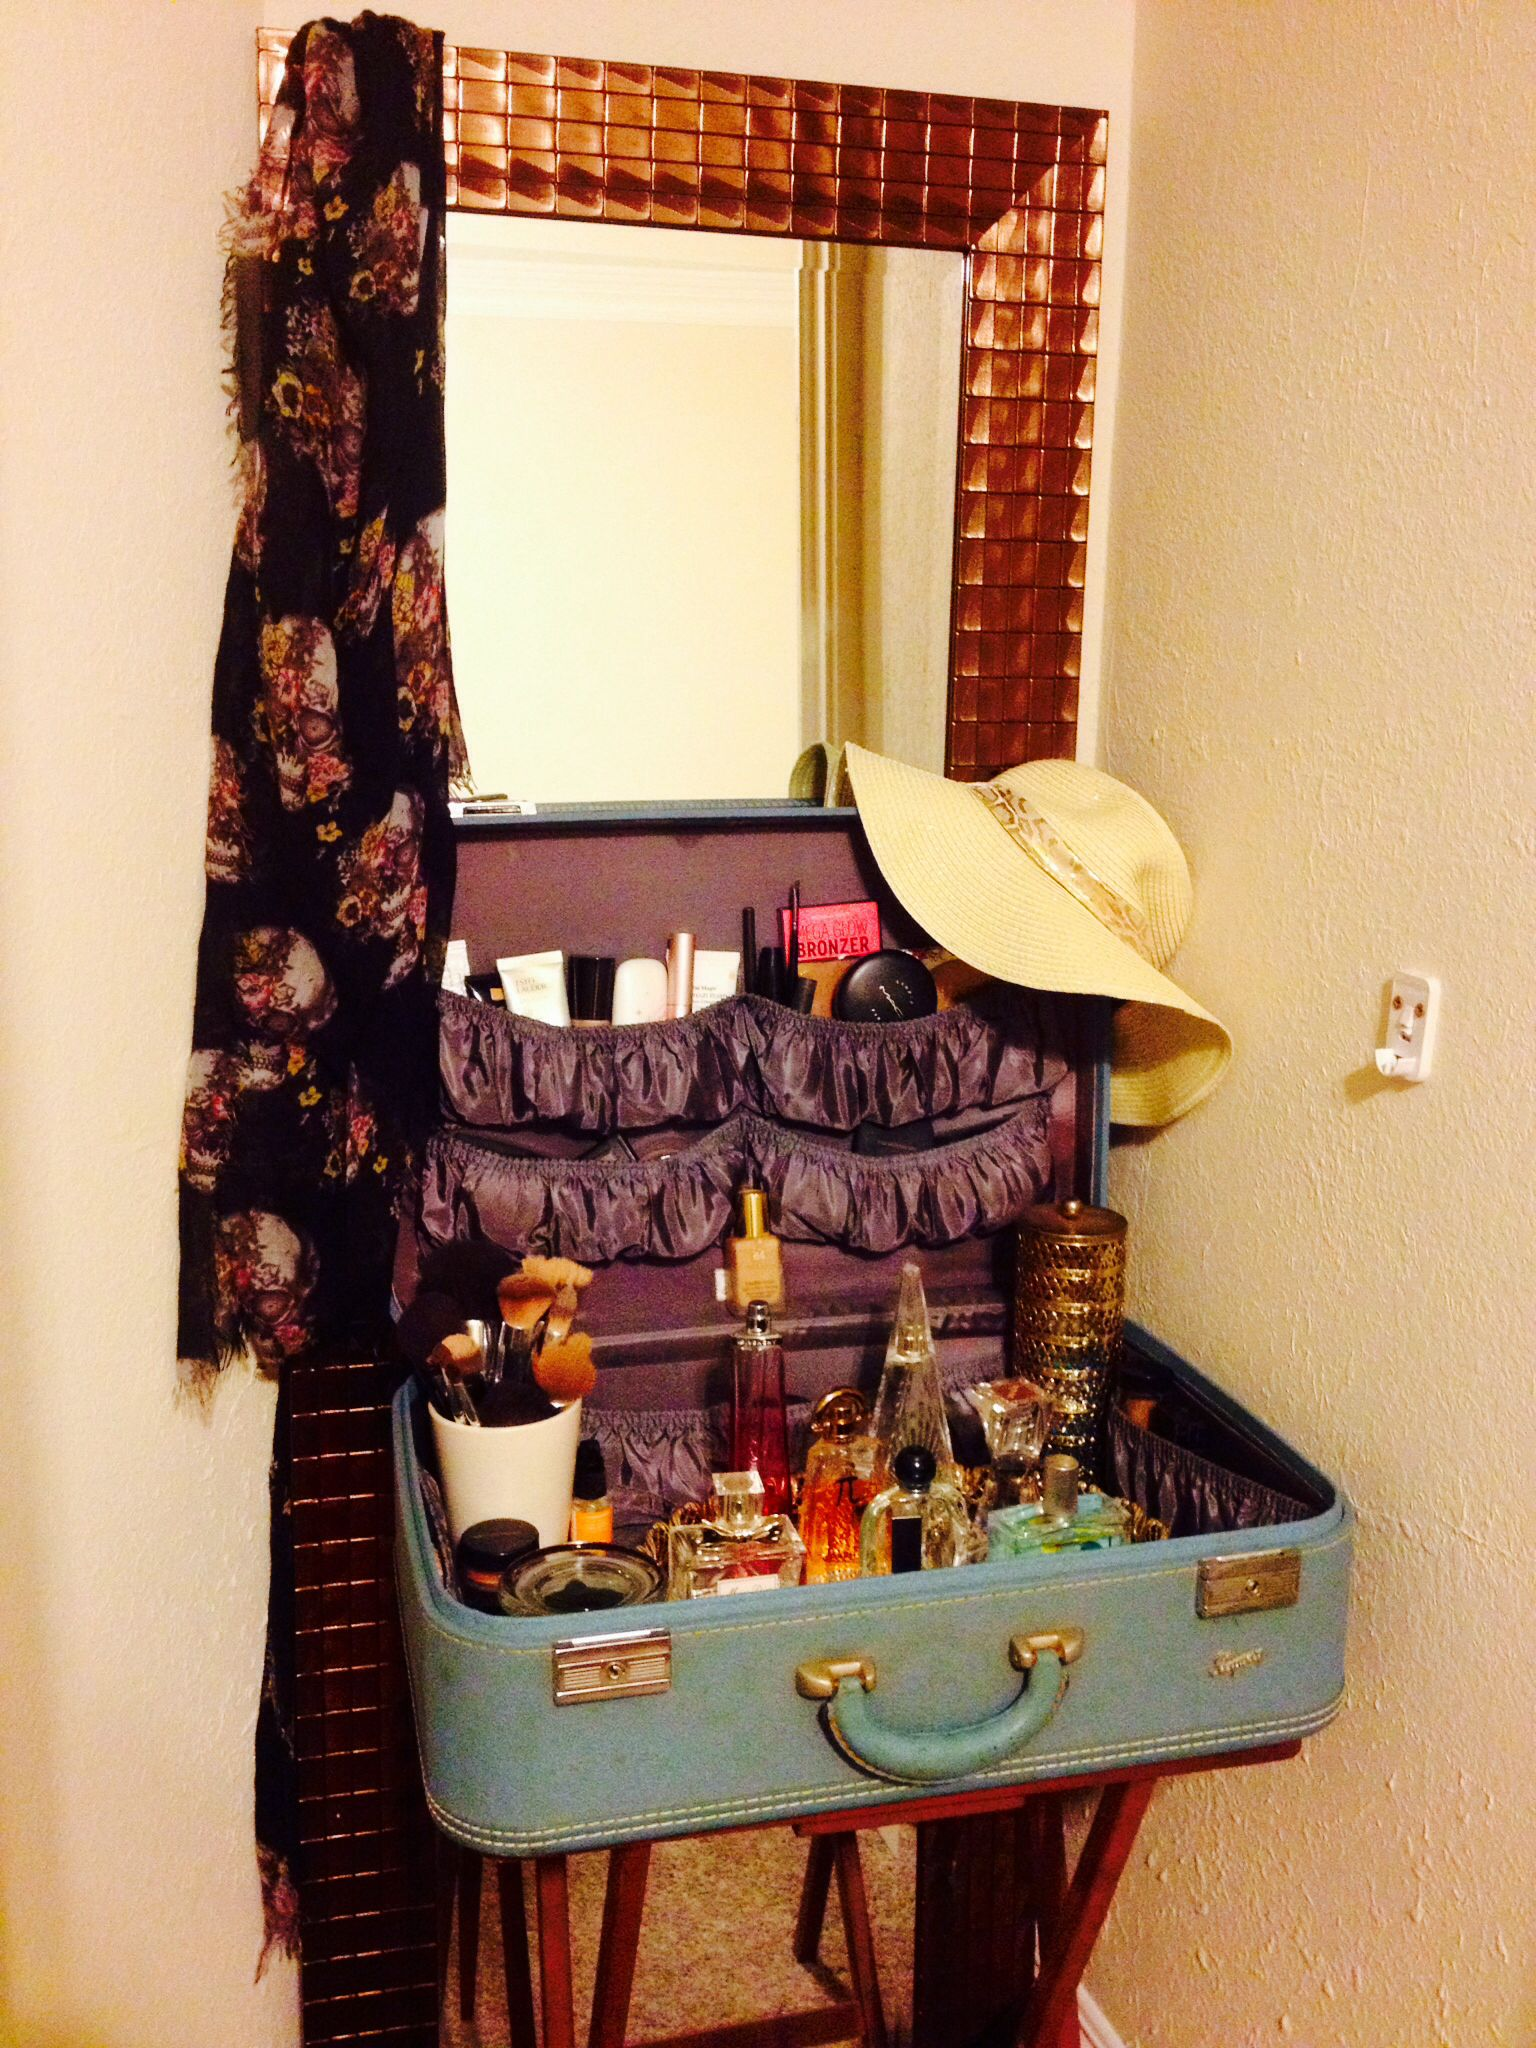 Vintage Decorative Suitcases Repurposed Vintage Suitcase As Vanity Inspired To Make My